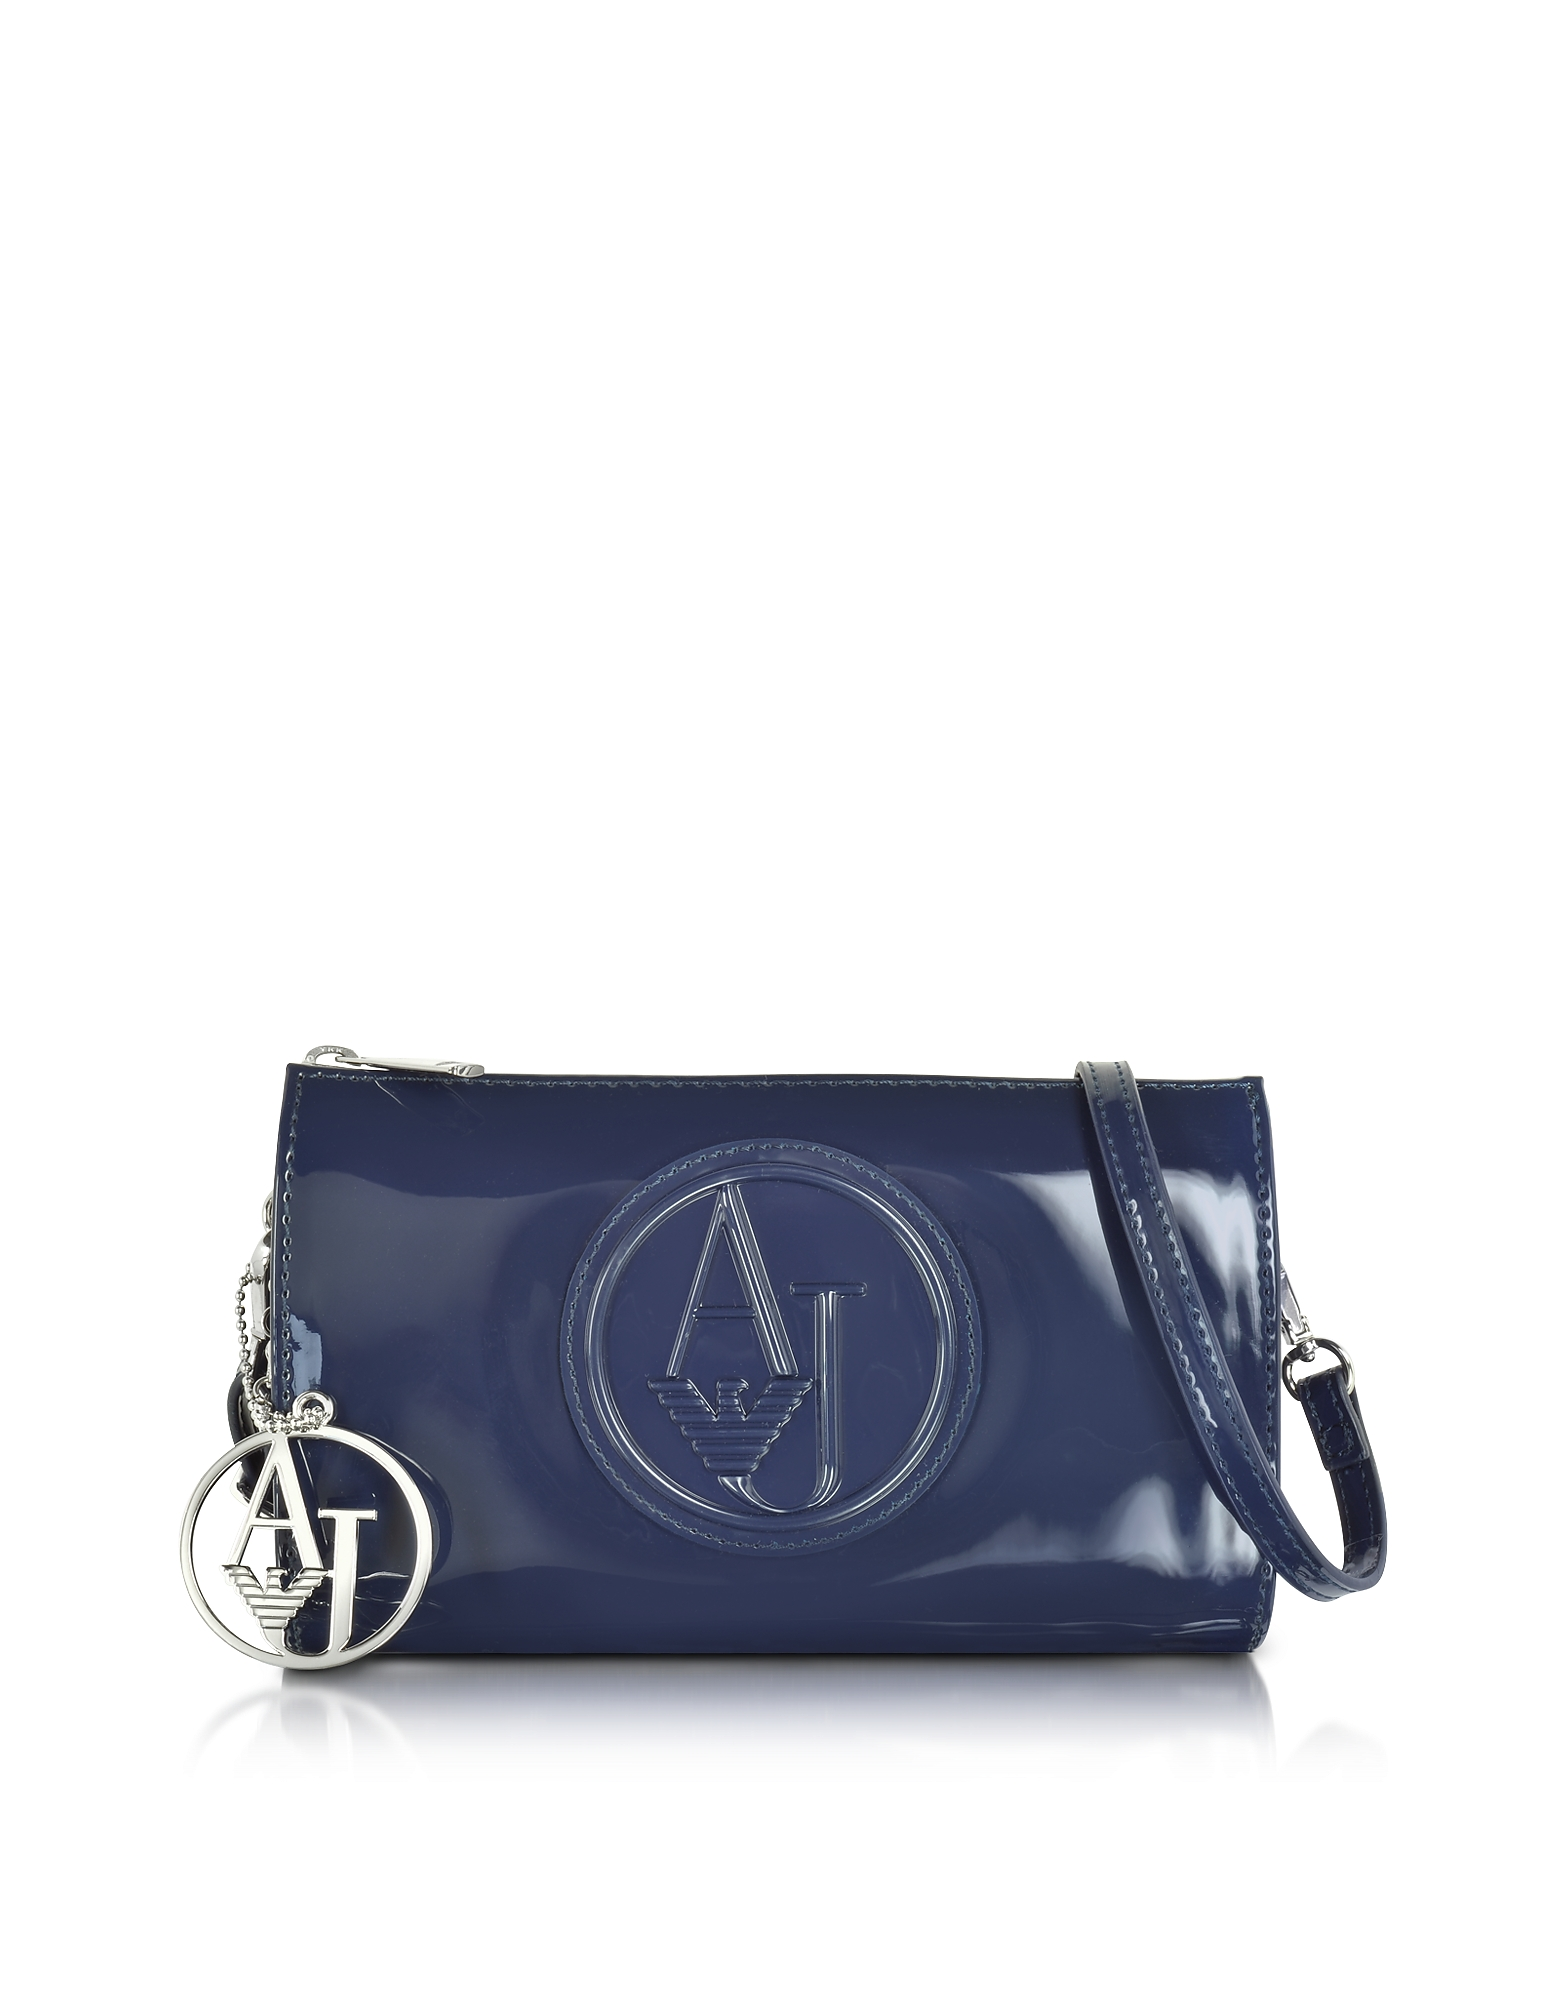 Armani Jeans Handbags, Faux Patent Leather Mini Crossbody